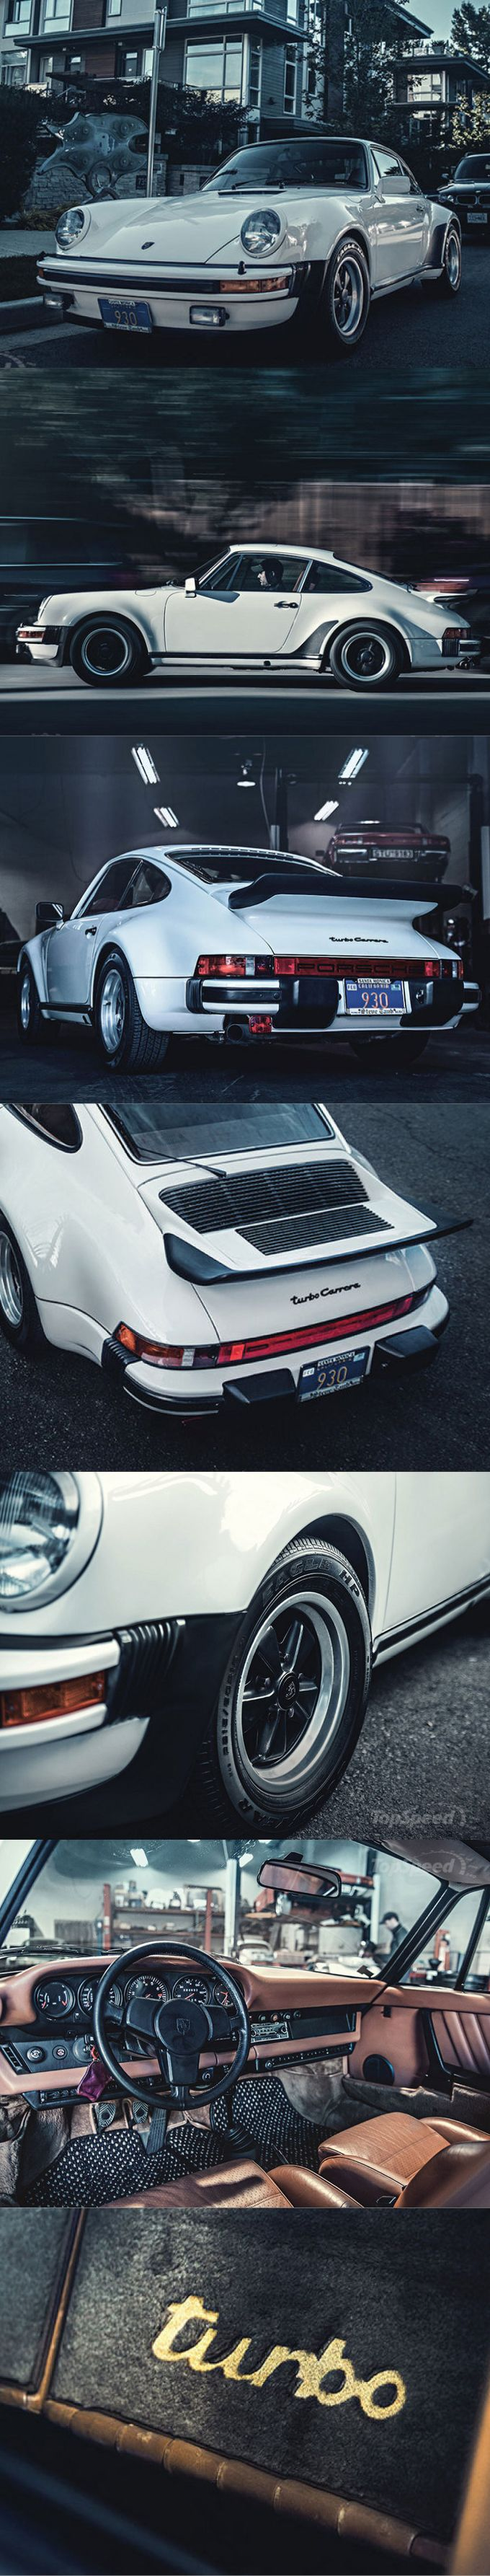 1976 Porsche 911 Turbo Carrera / USDM Germany / white / 256hp 3.0l F6 / www.topspeed.com